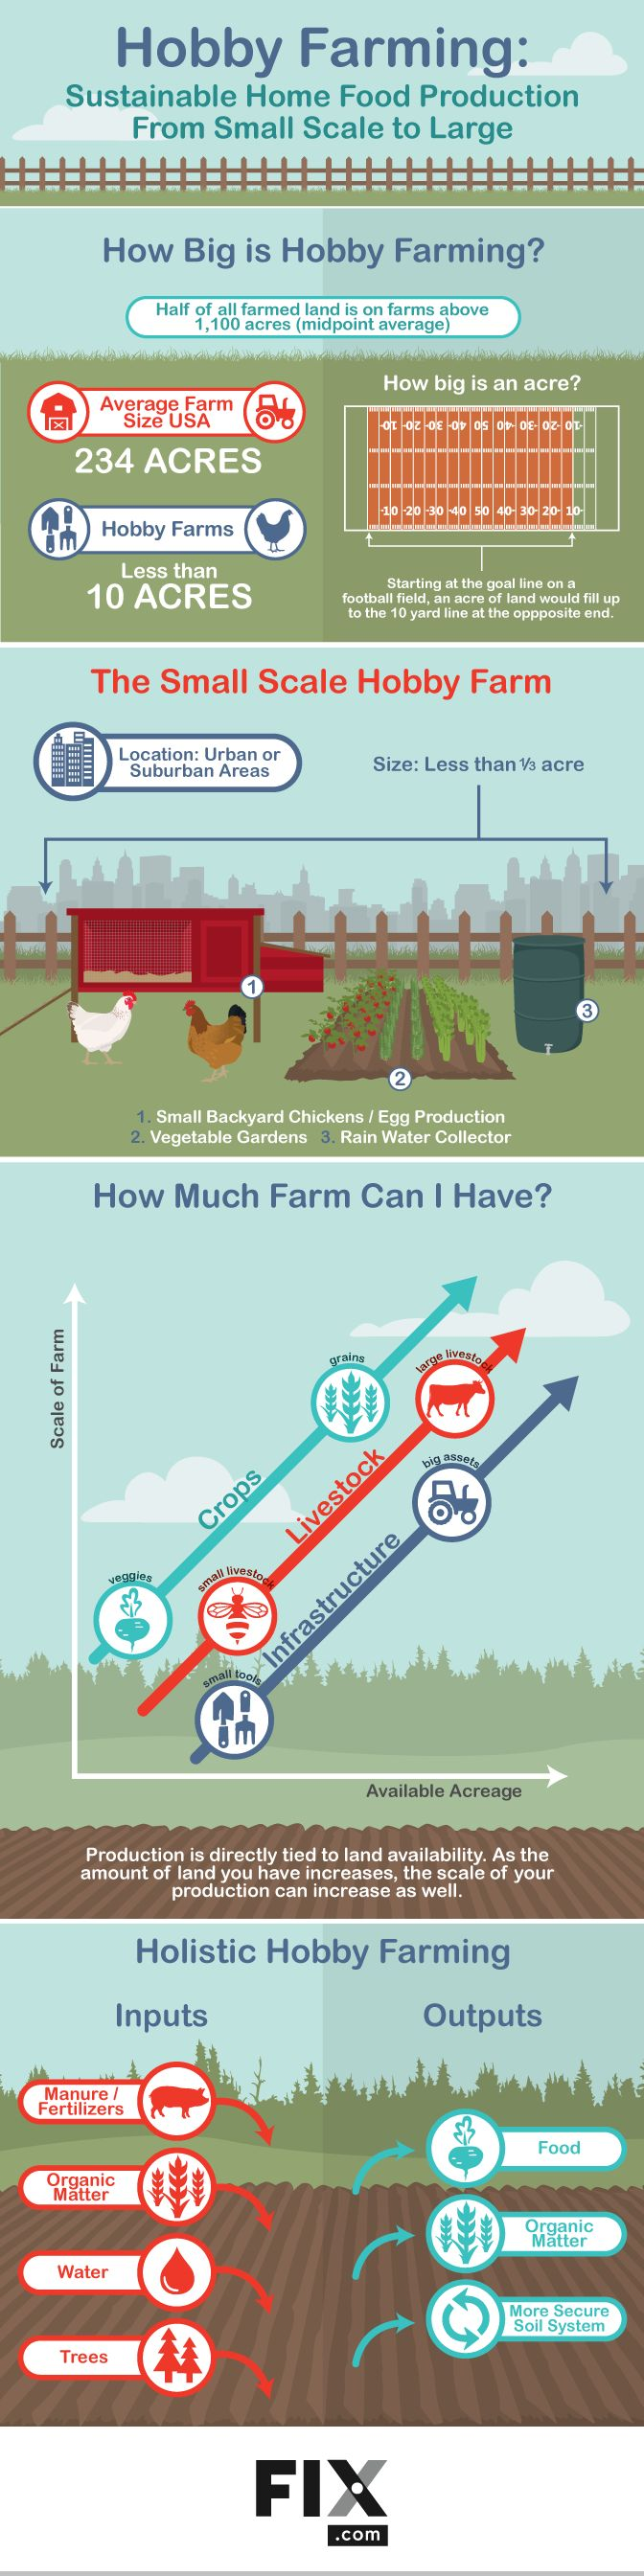 Hobby Farming Sustainable Home Food Production From Small Scale to Large…